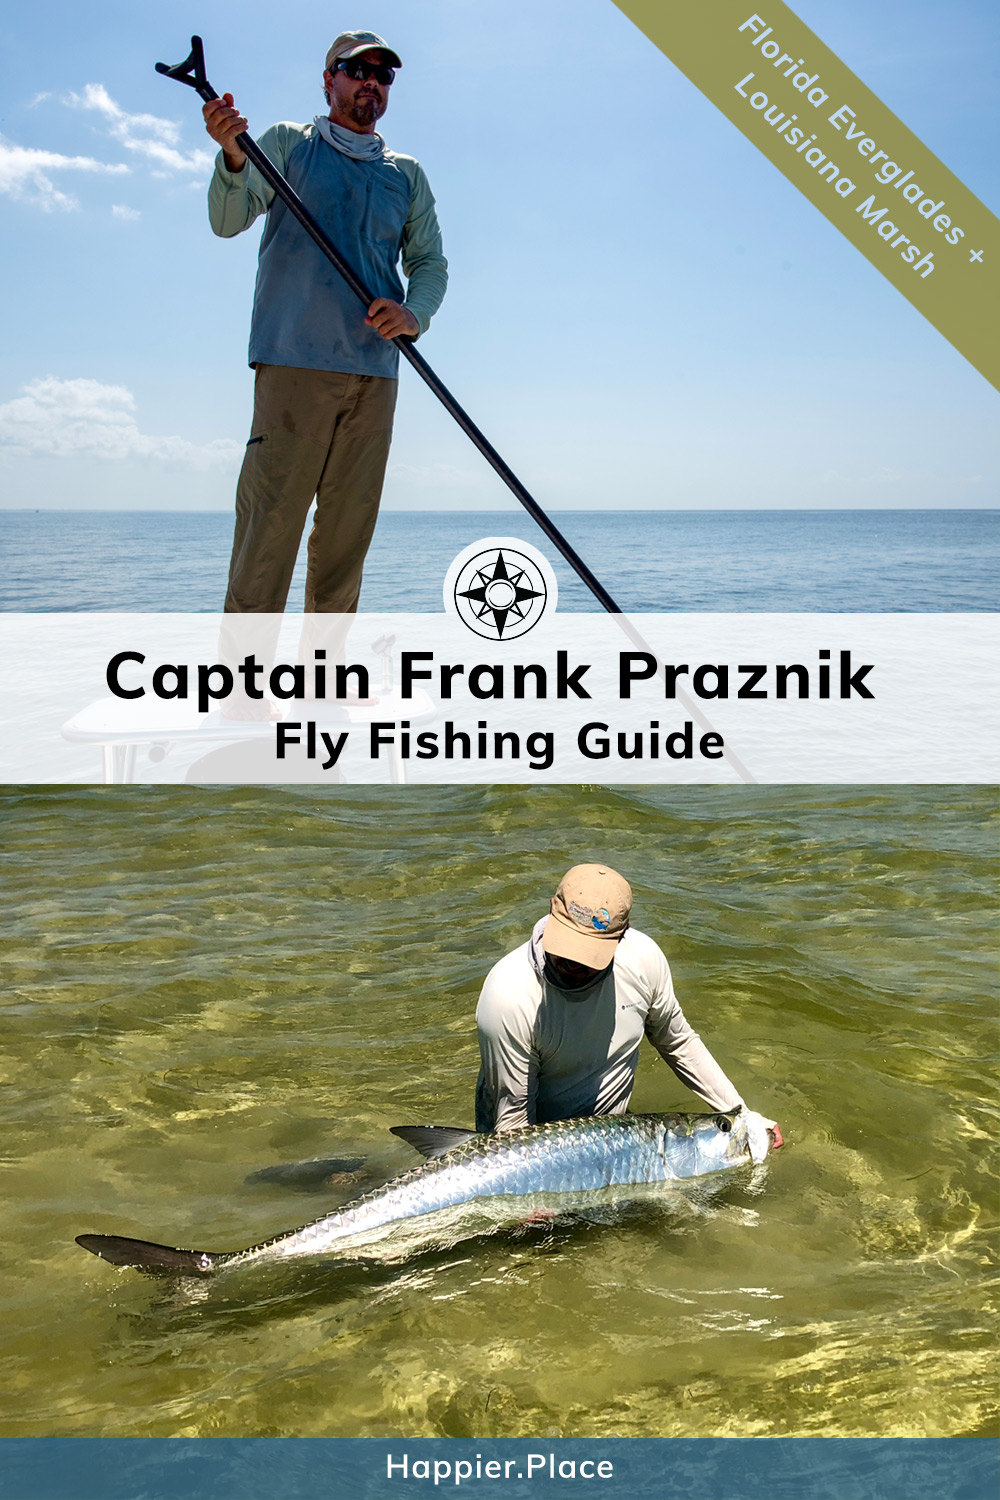 Interview with Captain Frank Praznik, Fly Fishing Guide in Louisiana Marsh and Florida Everglades. Seen guiding on his skiff platform and with a large tarpon.